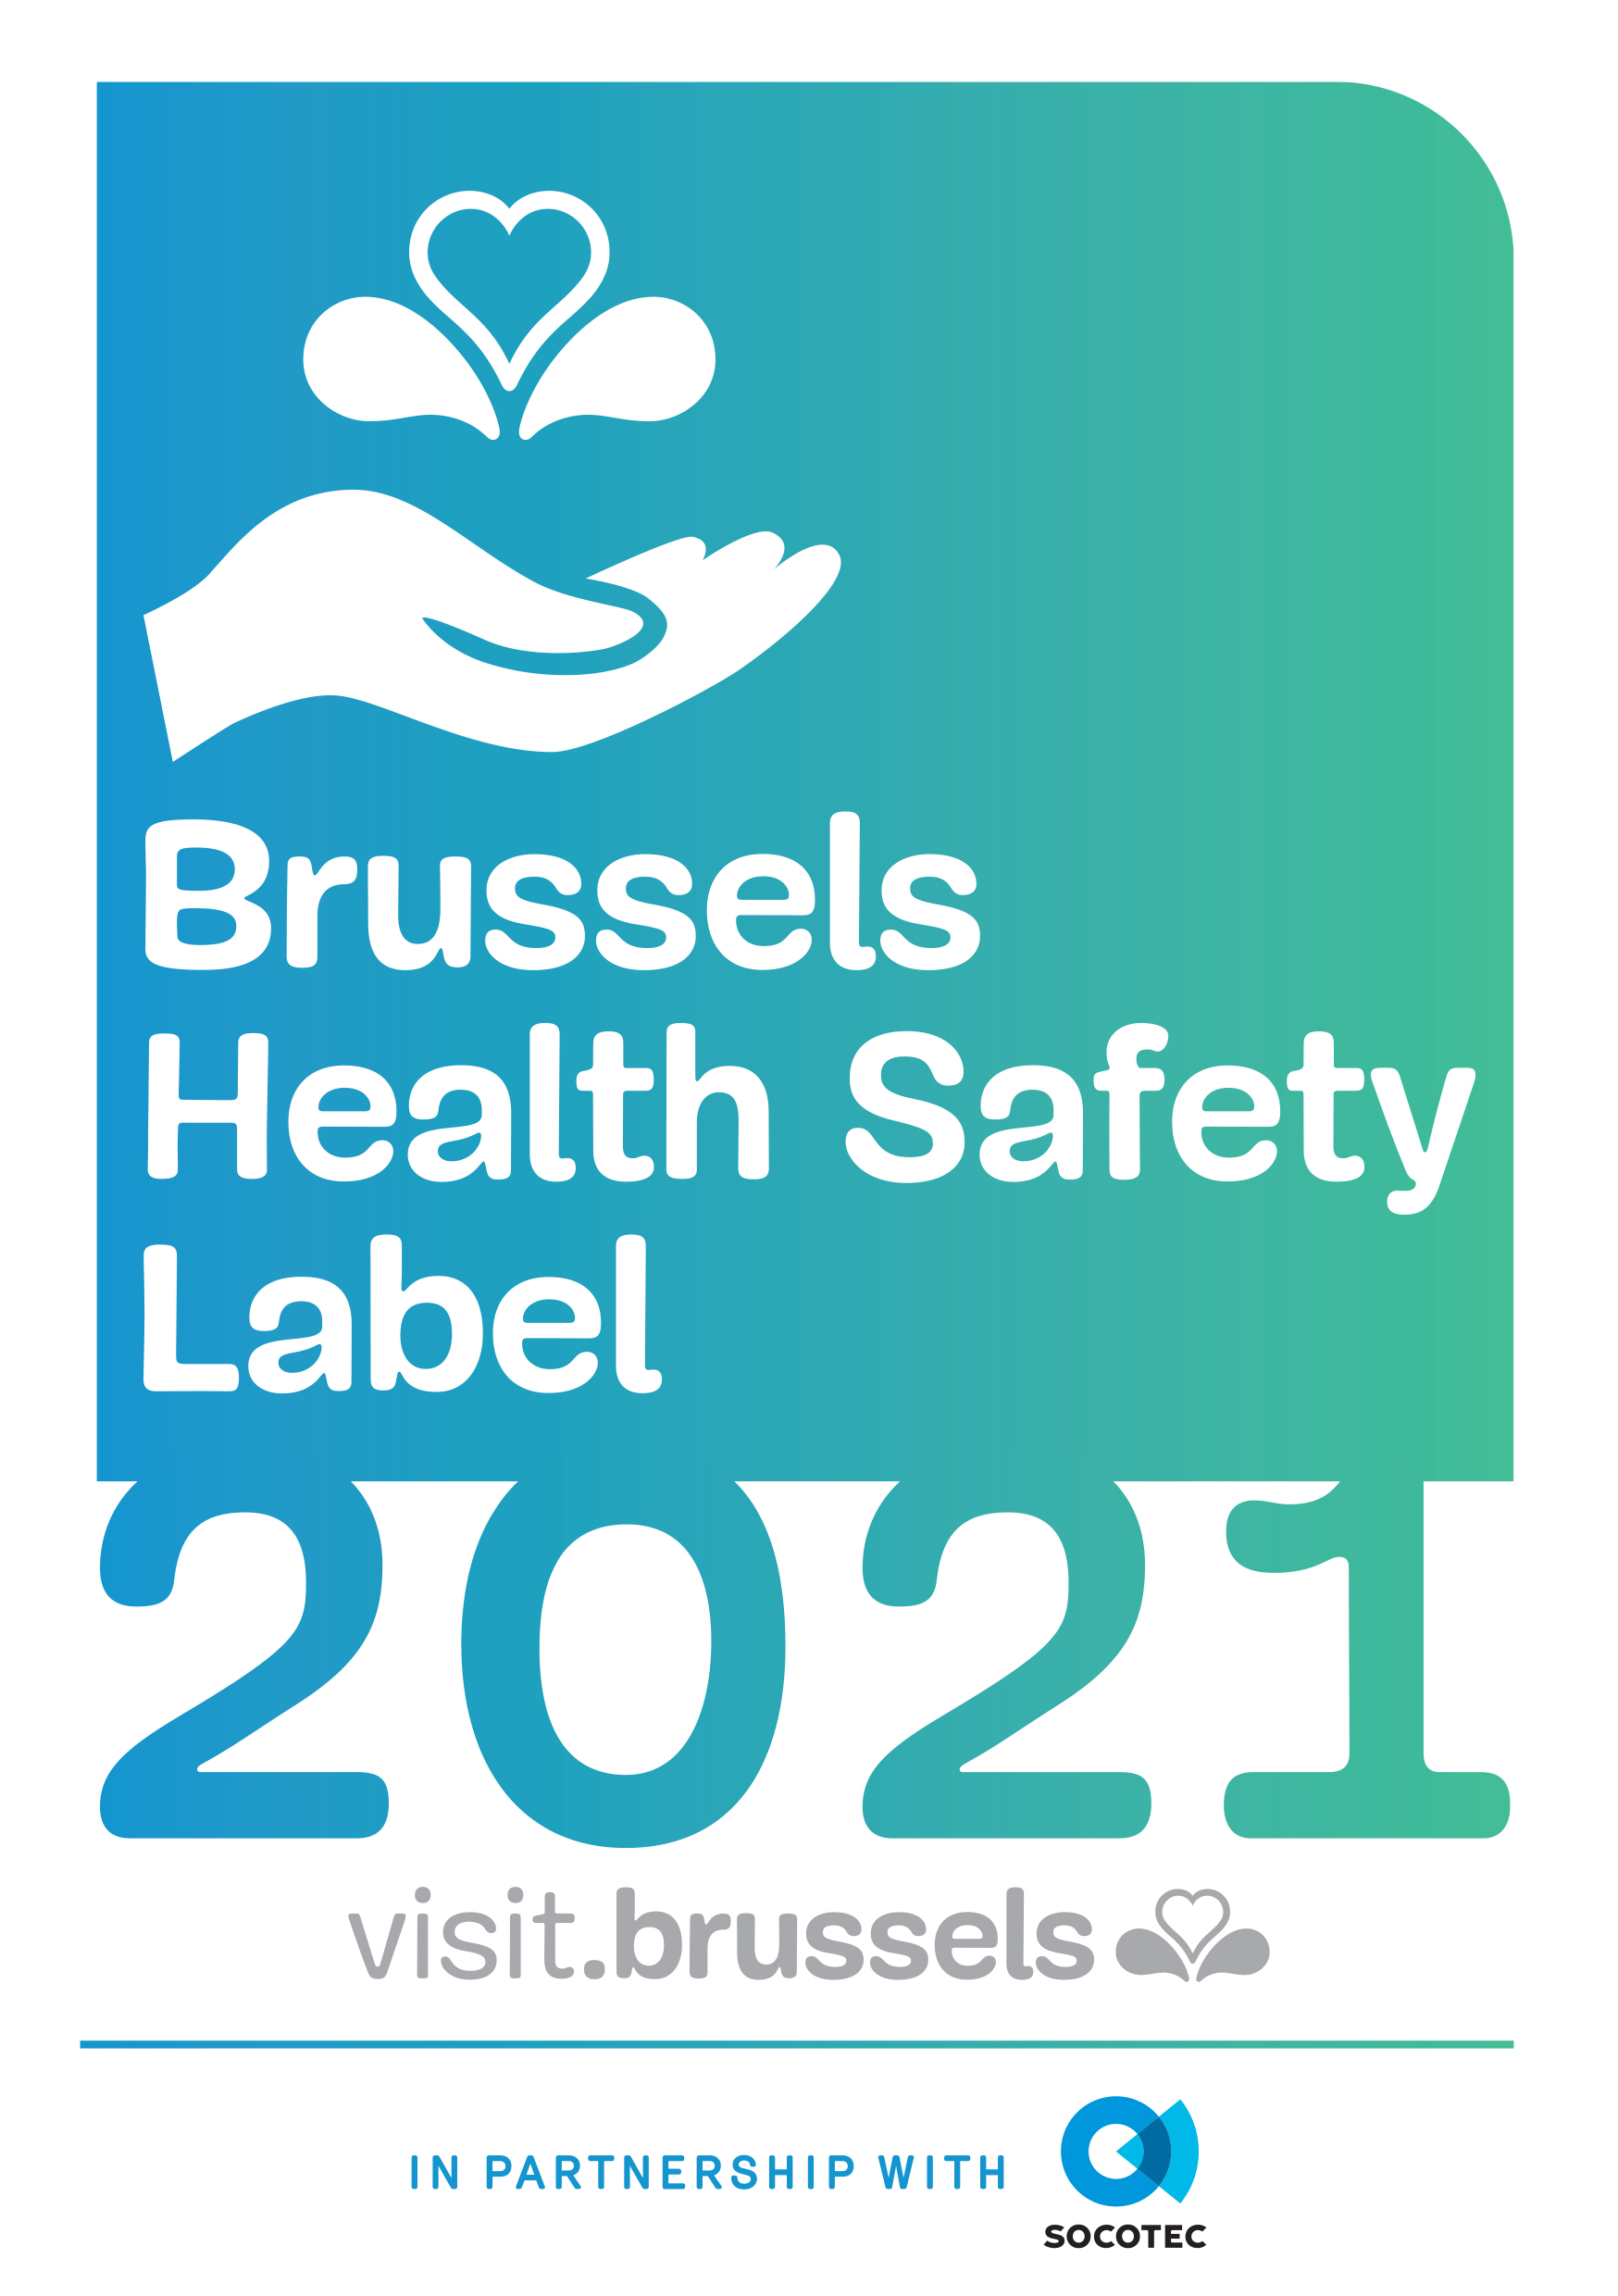 Brussels Health Safety Label 2021